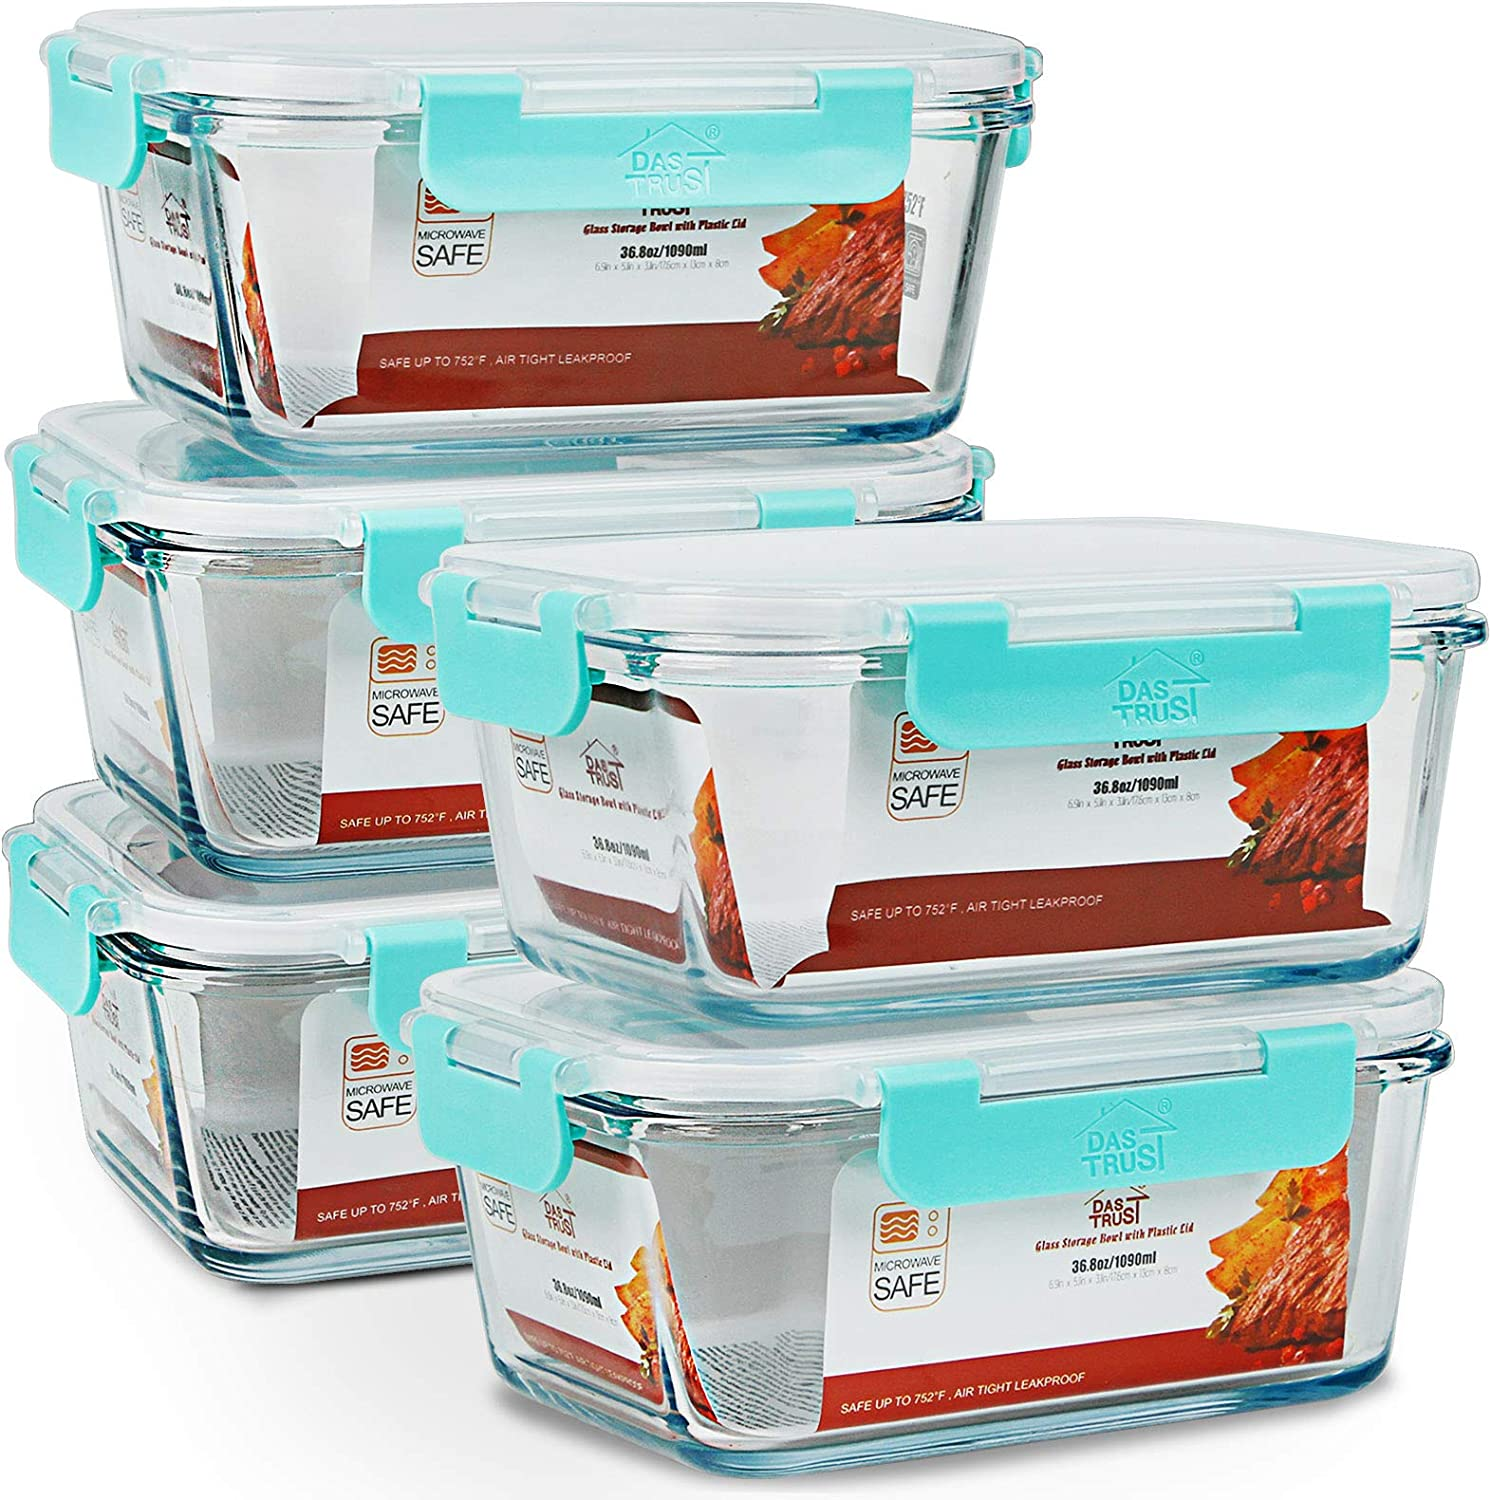 5 Pack 36.8oz Upgraded Meal Prep Containers with Lifetime lids Glass Food Storage Containers Bento Boxes Lunch Containers with Leakproof Lids, Oven Microwave Freezer Dishwasher Safe